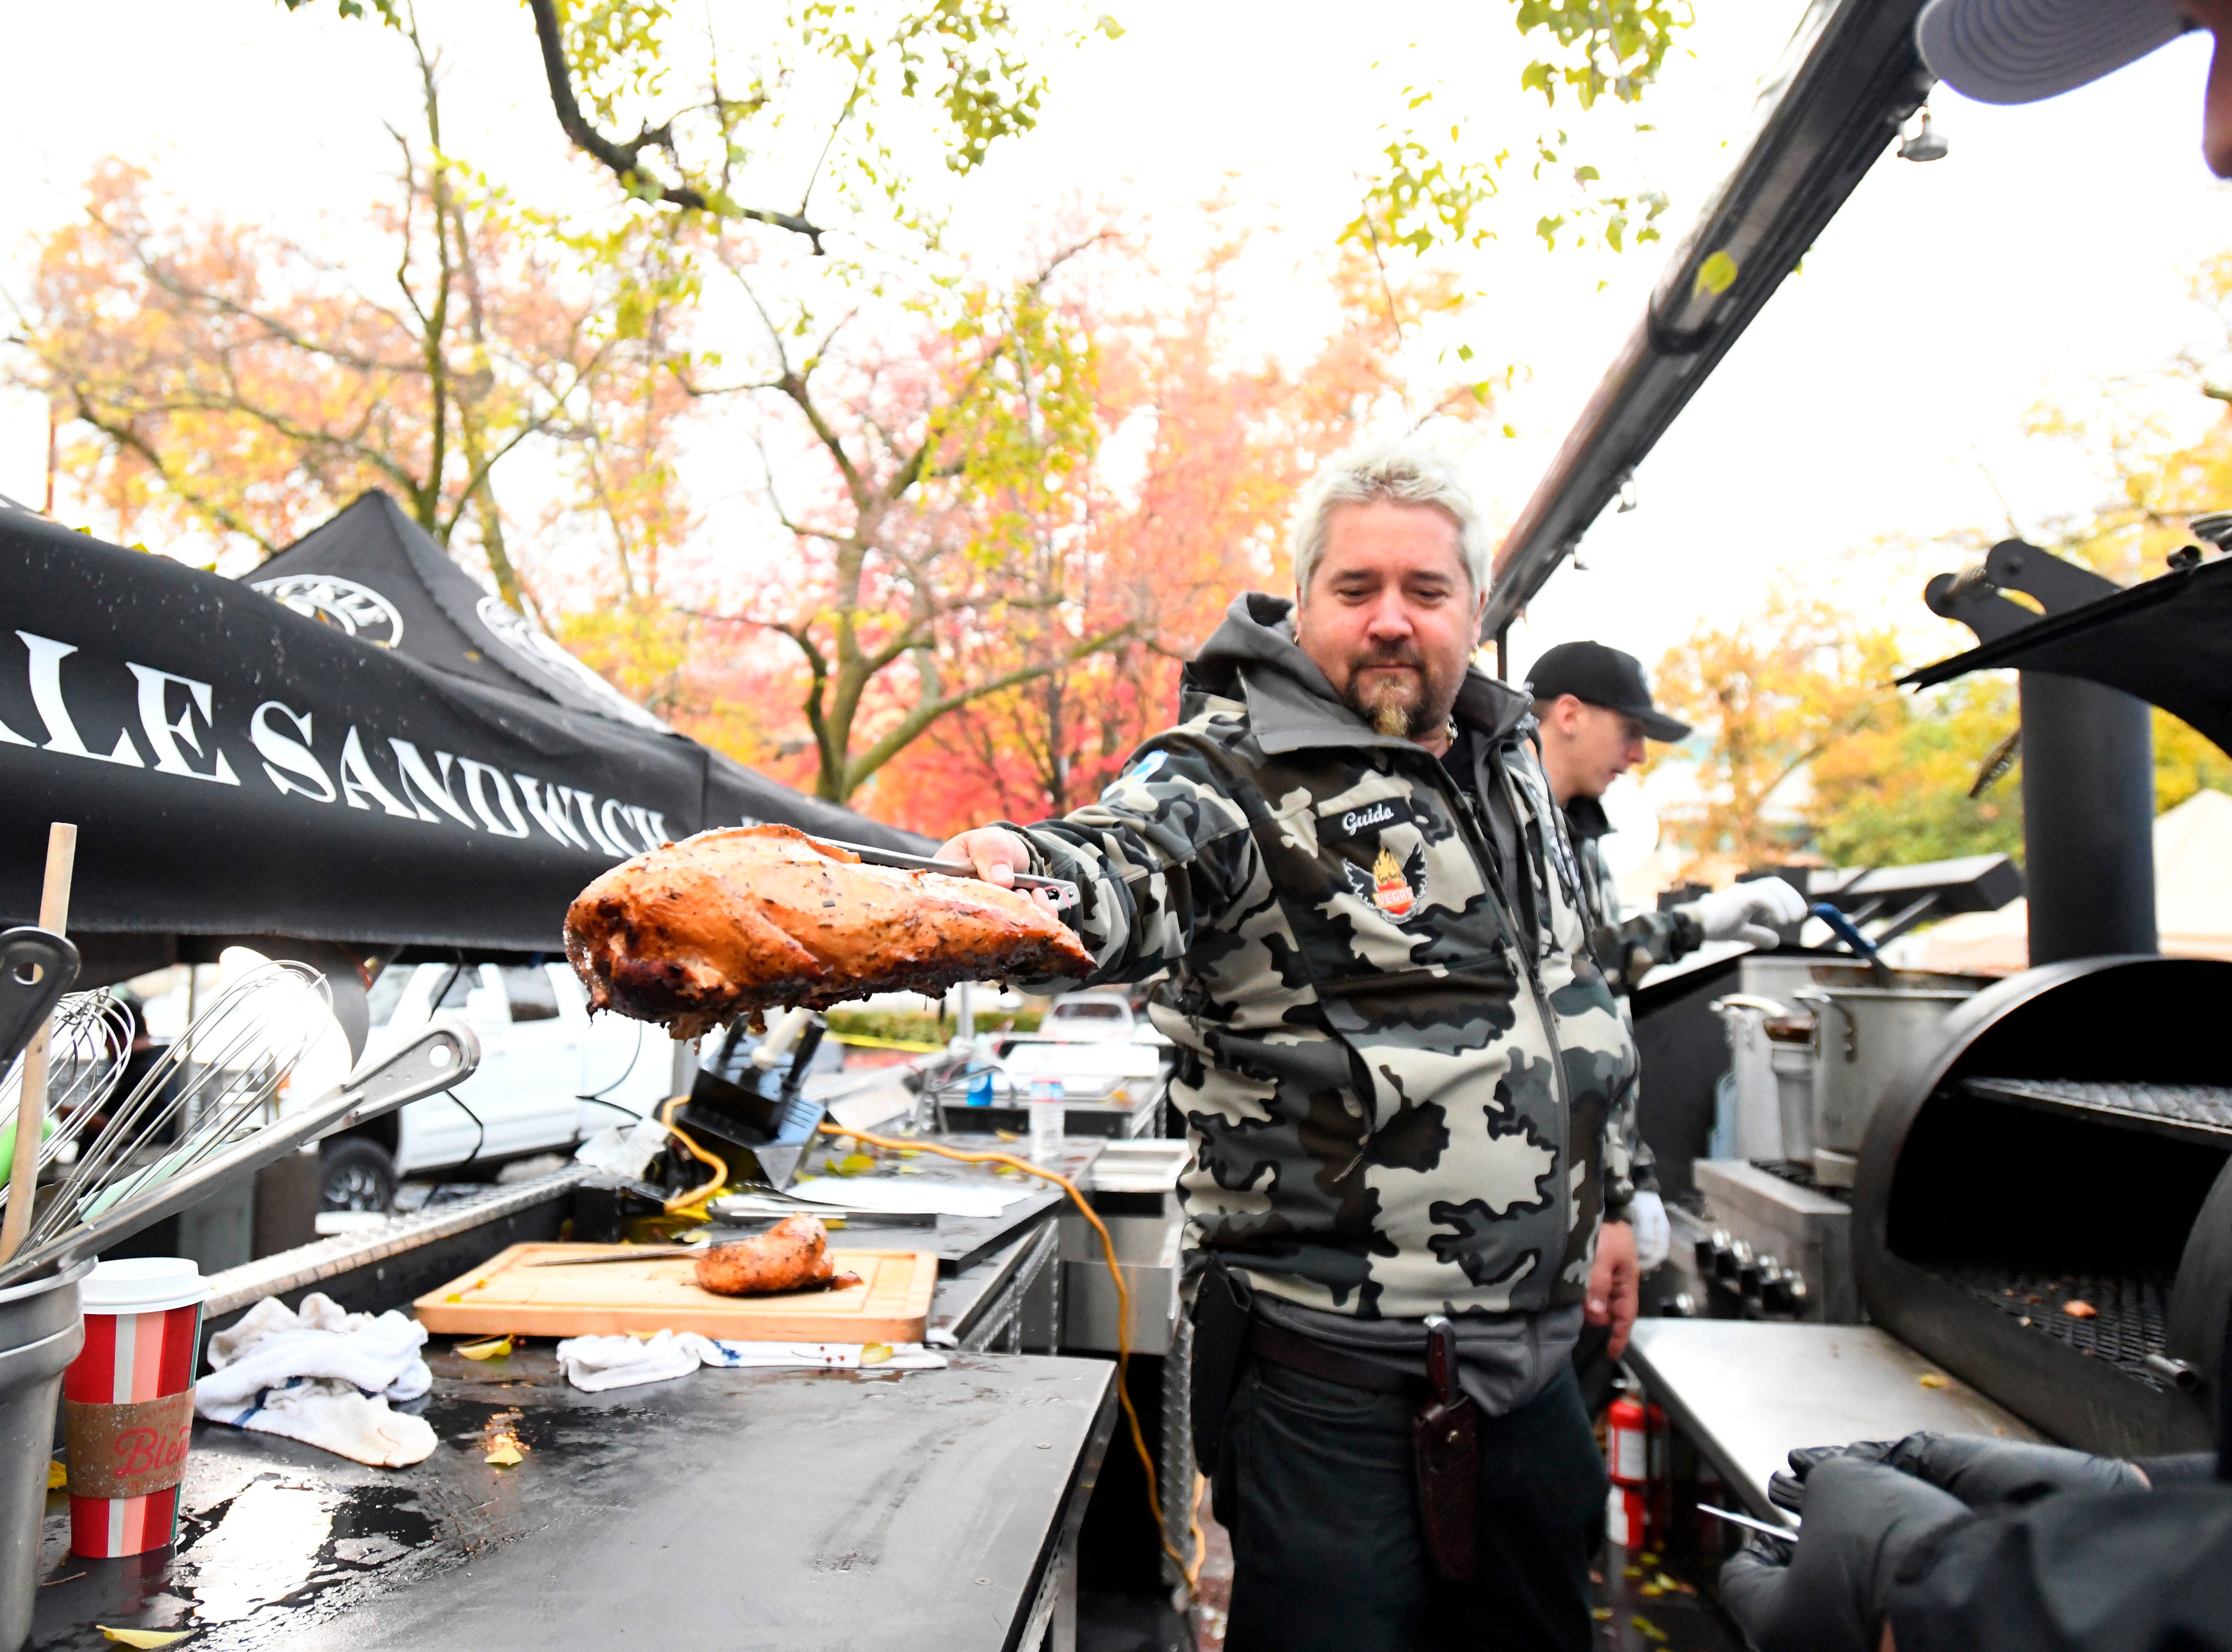 Chef Guy Fieri pulls a turkey from a grill, Thursday, Nov. 22, 2018, in Chico, Calif. Fieri was among the volunteers who showed up to prepare Thanksgiving meals for evacuees from the Camp Fire, which devastated the nearby town of Paradise, Calif. (Benjamin Spillman/The Reno Gazette-Journal via AP) ORG XMIT: NVREN401